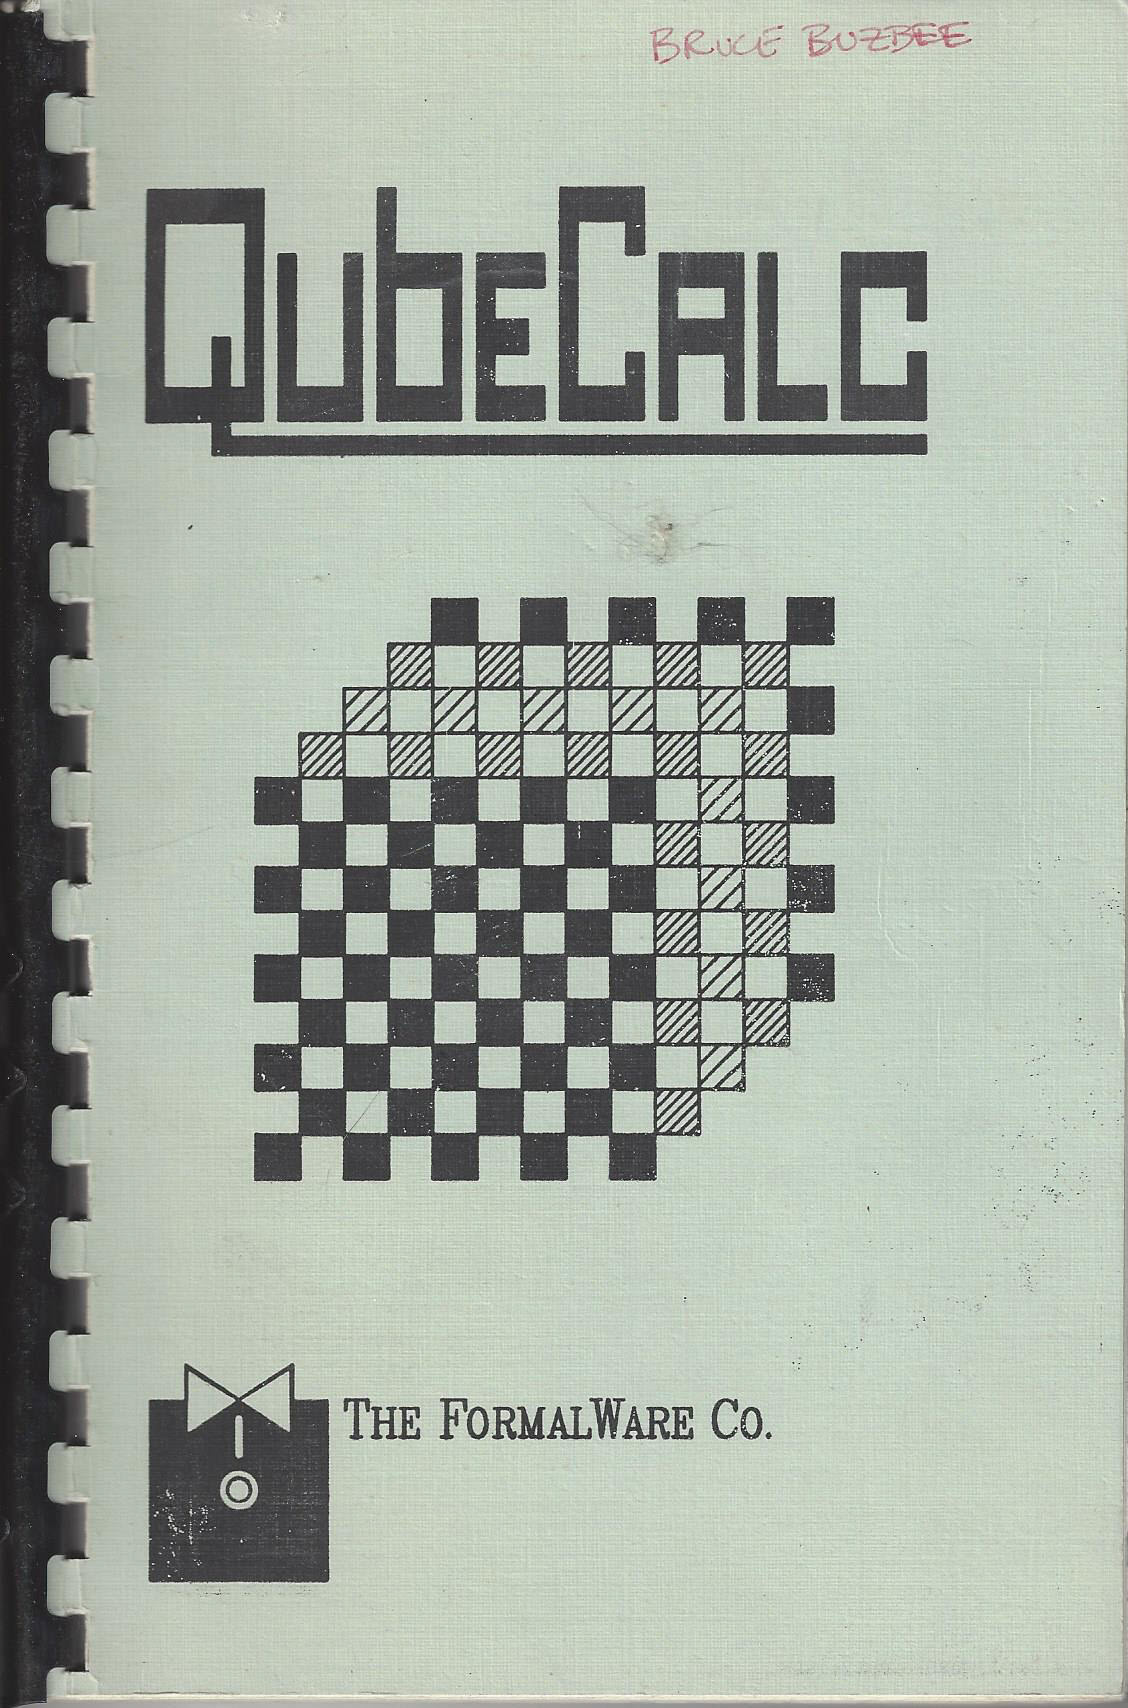 FirstQubeCalcManual